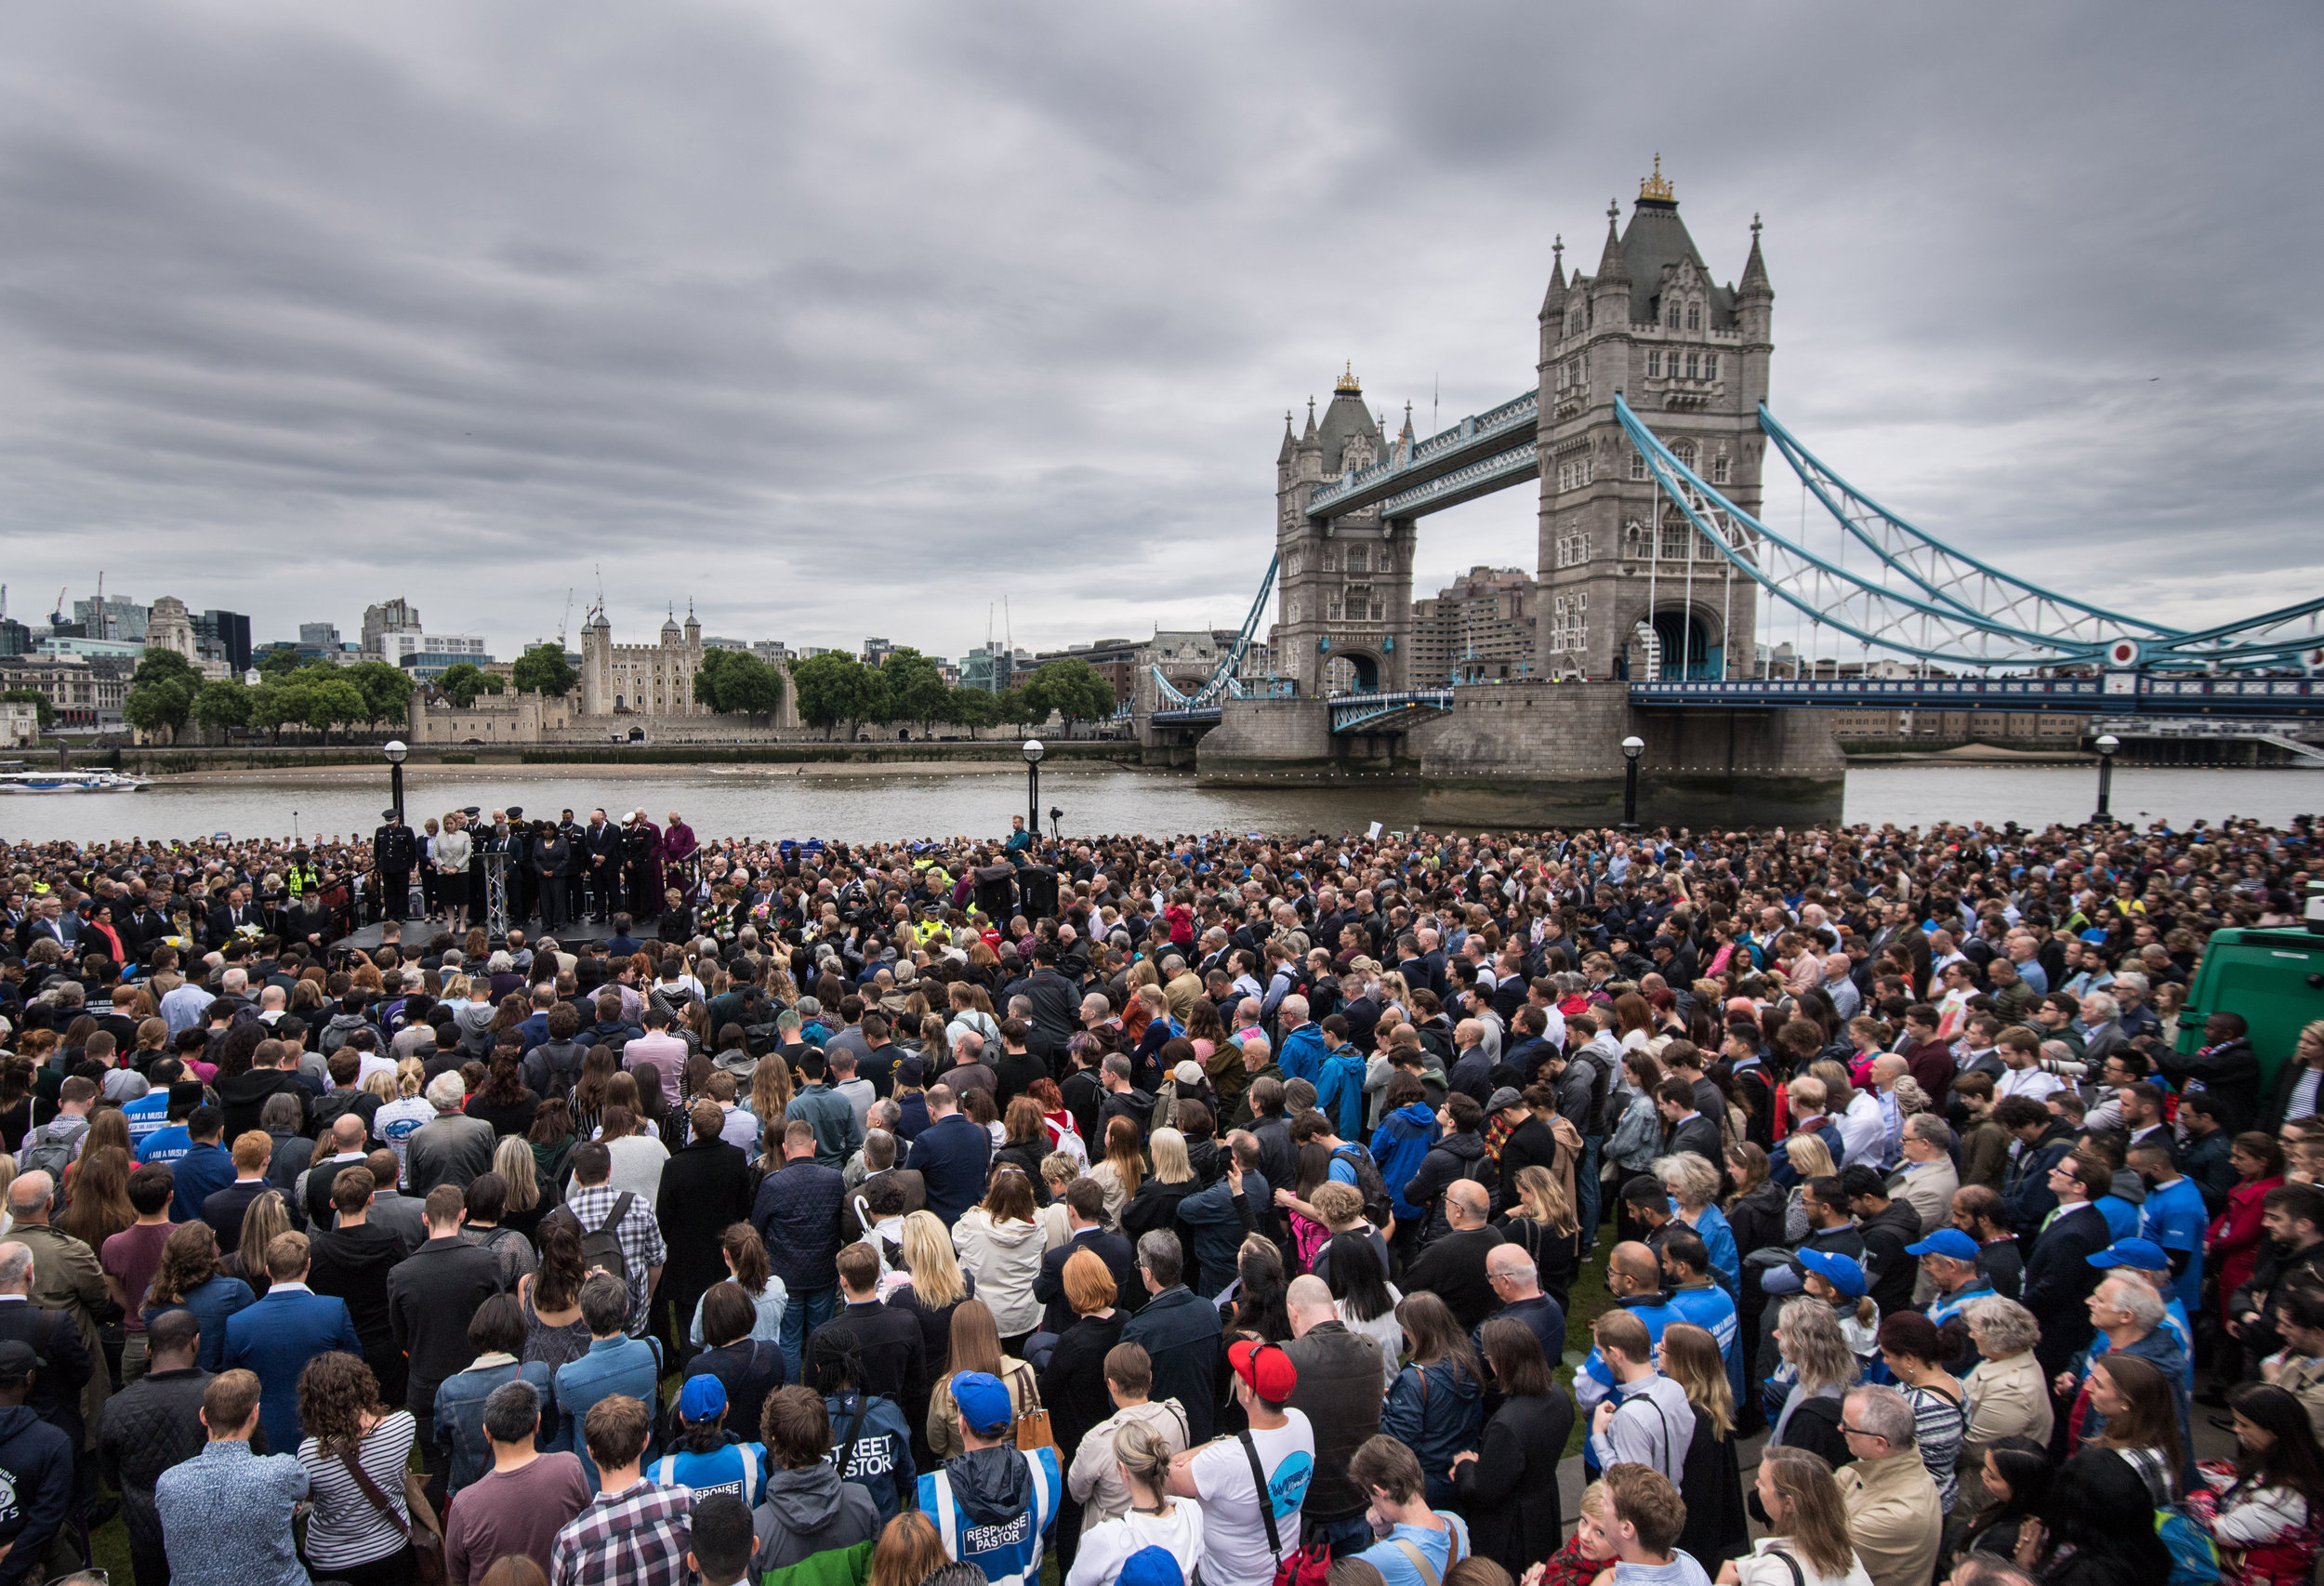 A general view of the Vigil in Potters Field Park, in which Mayor of London Sadiq Khan spoke briefly and then a minutes silence was held